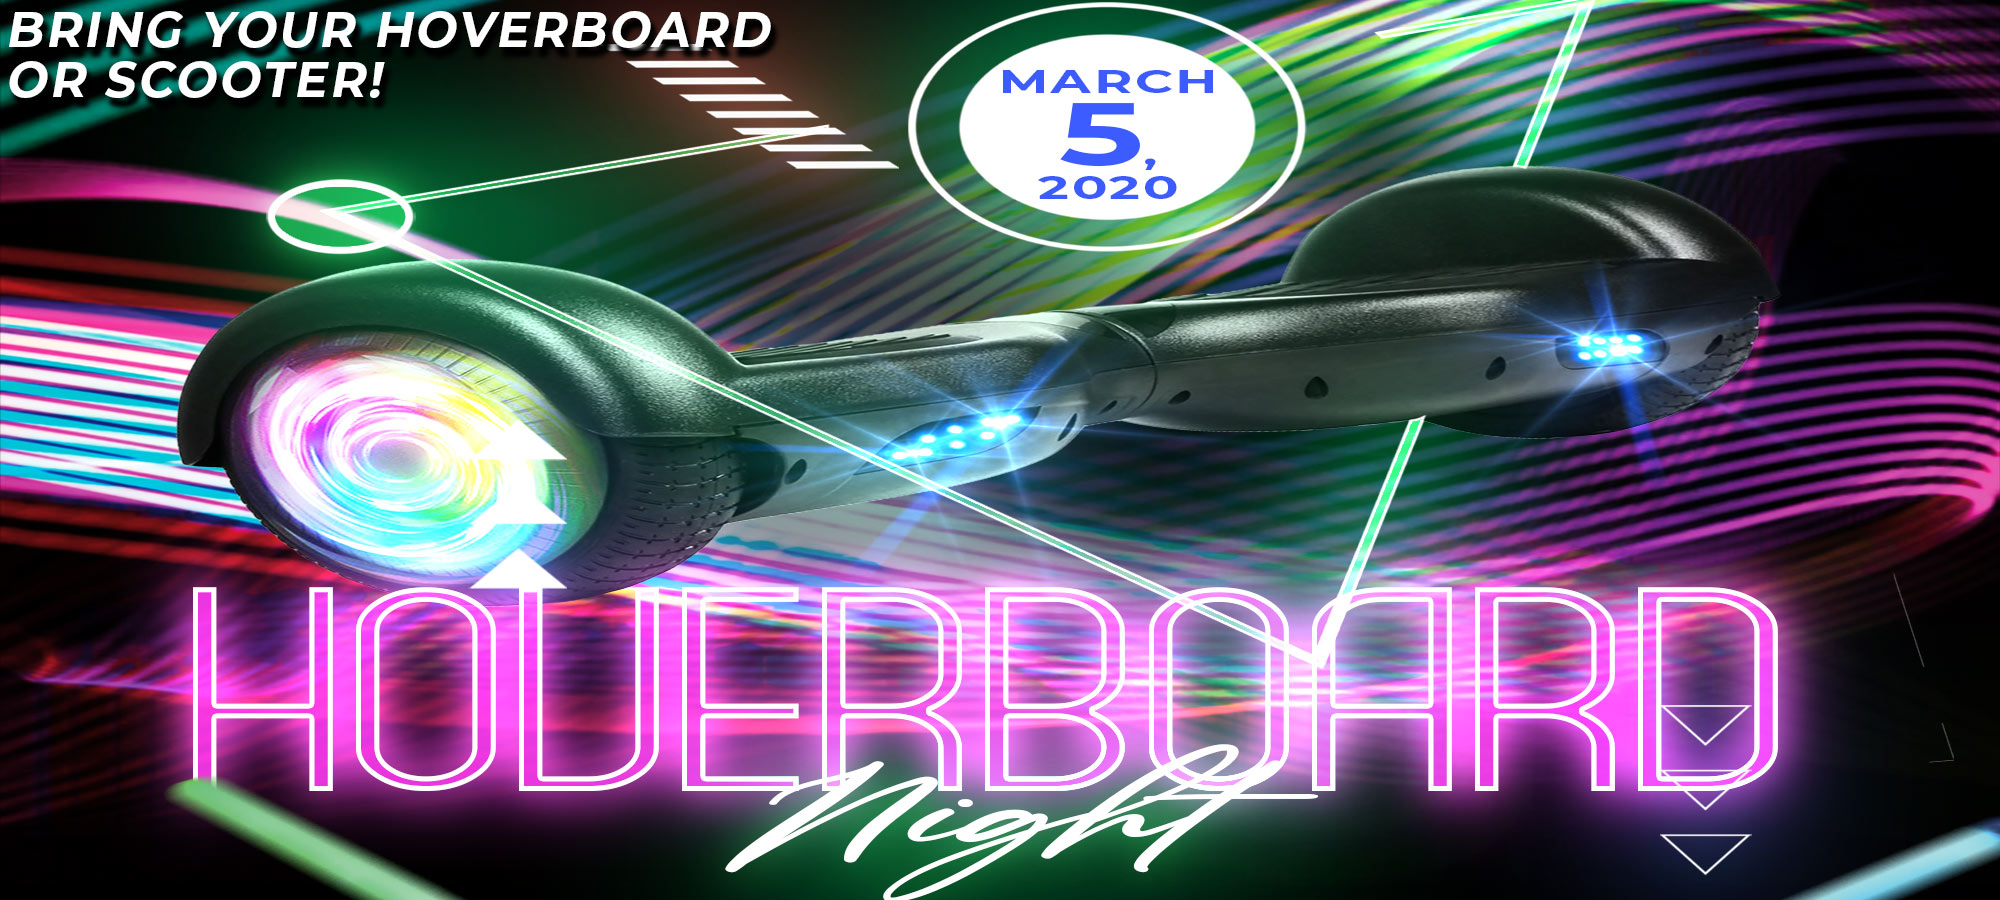 Hoverboard-Night-March-2020-Both